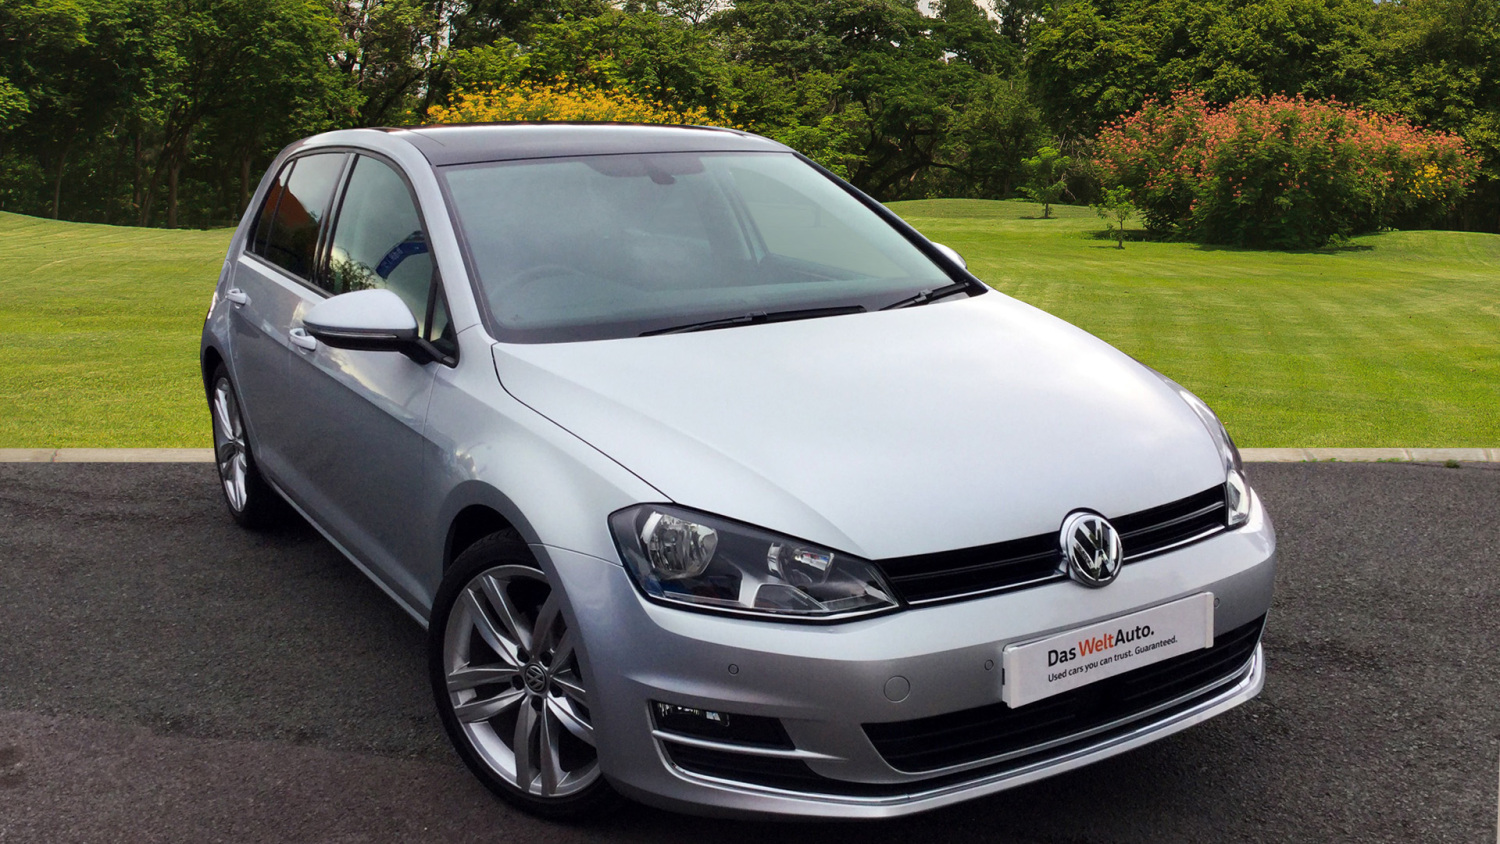 used volkswagen golf 1 4 tsi 150 gt edition 5dr dsg petrol hatchback for sale in scotland. Black Bedroom Furniture Sets. Home Design Ideas